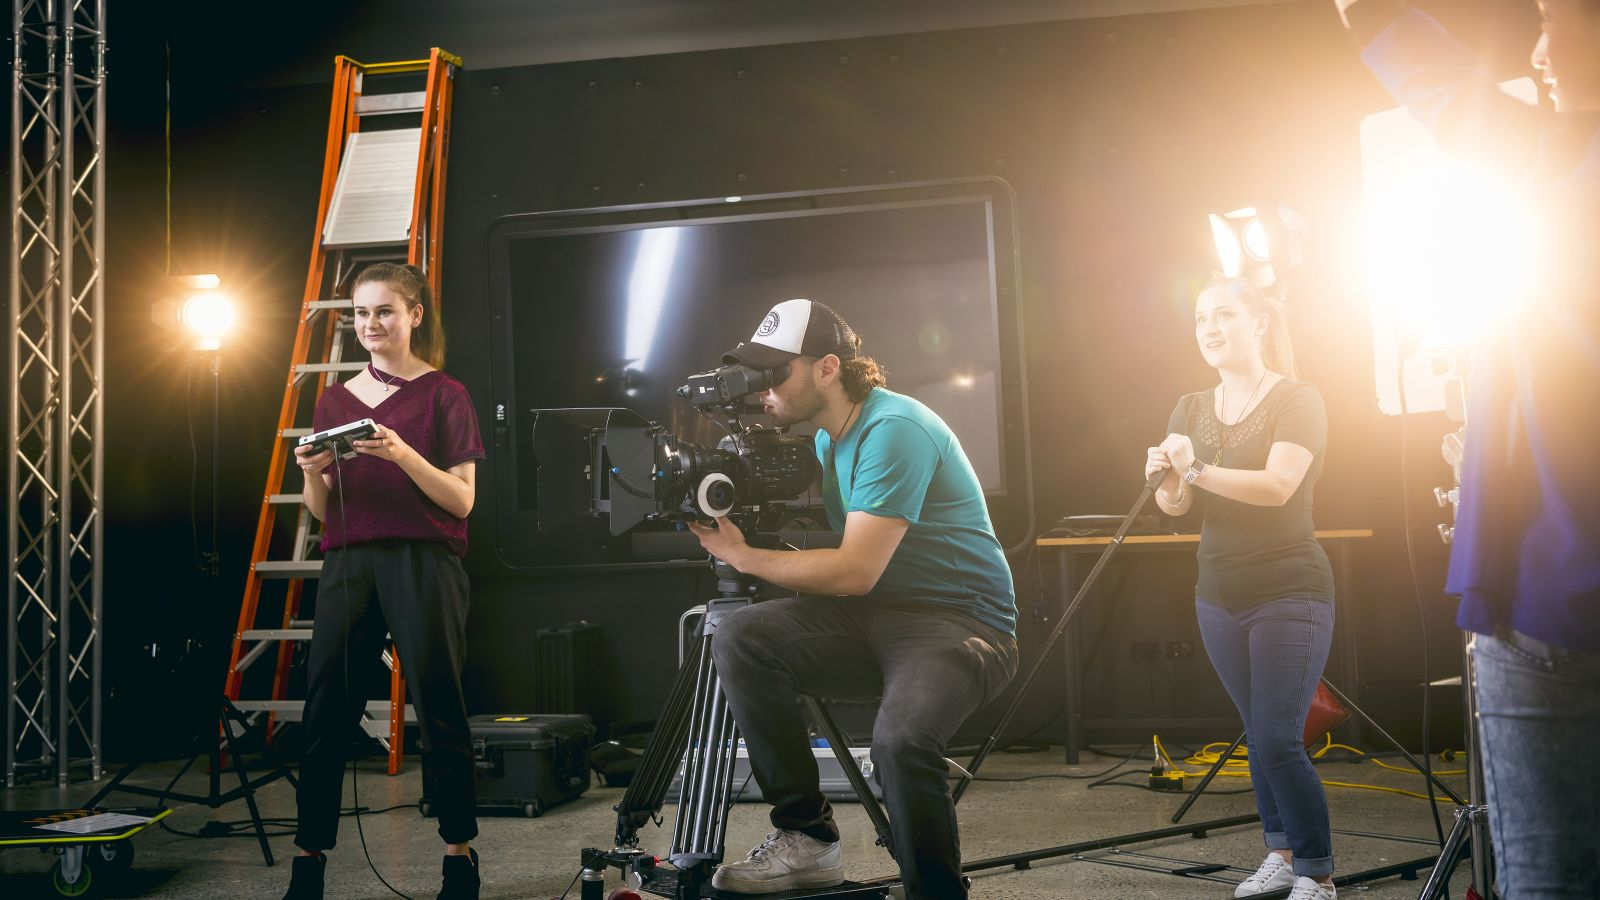 Students at work in a film studio, with a young man operating a camera in the middle and two females either side using other equipment.